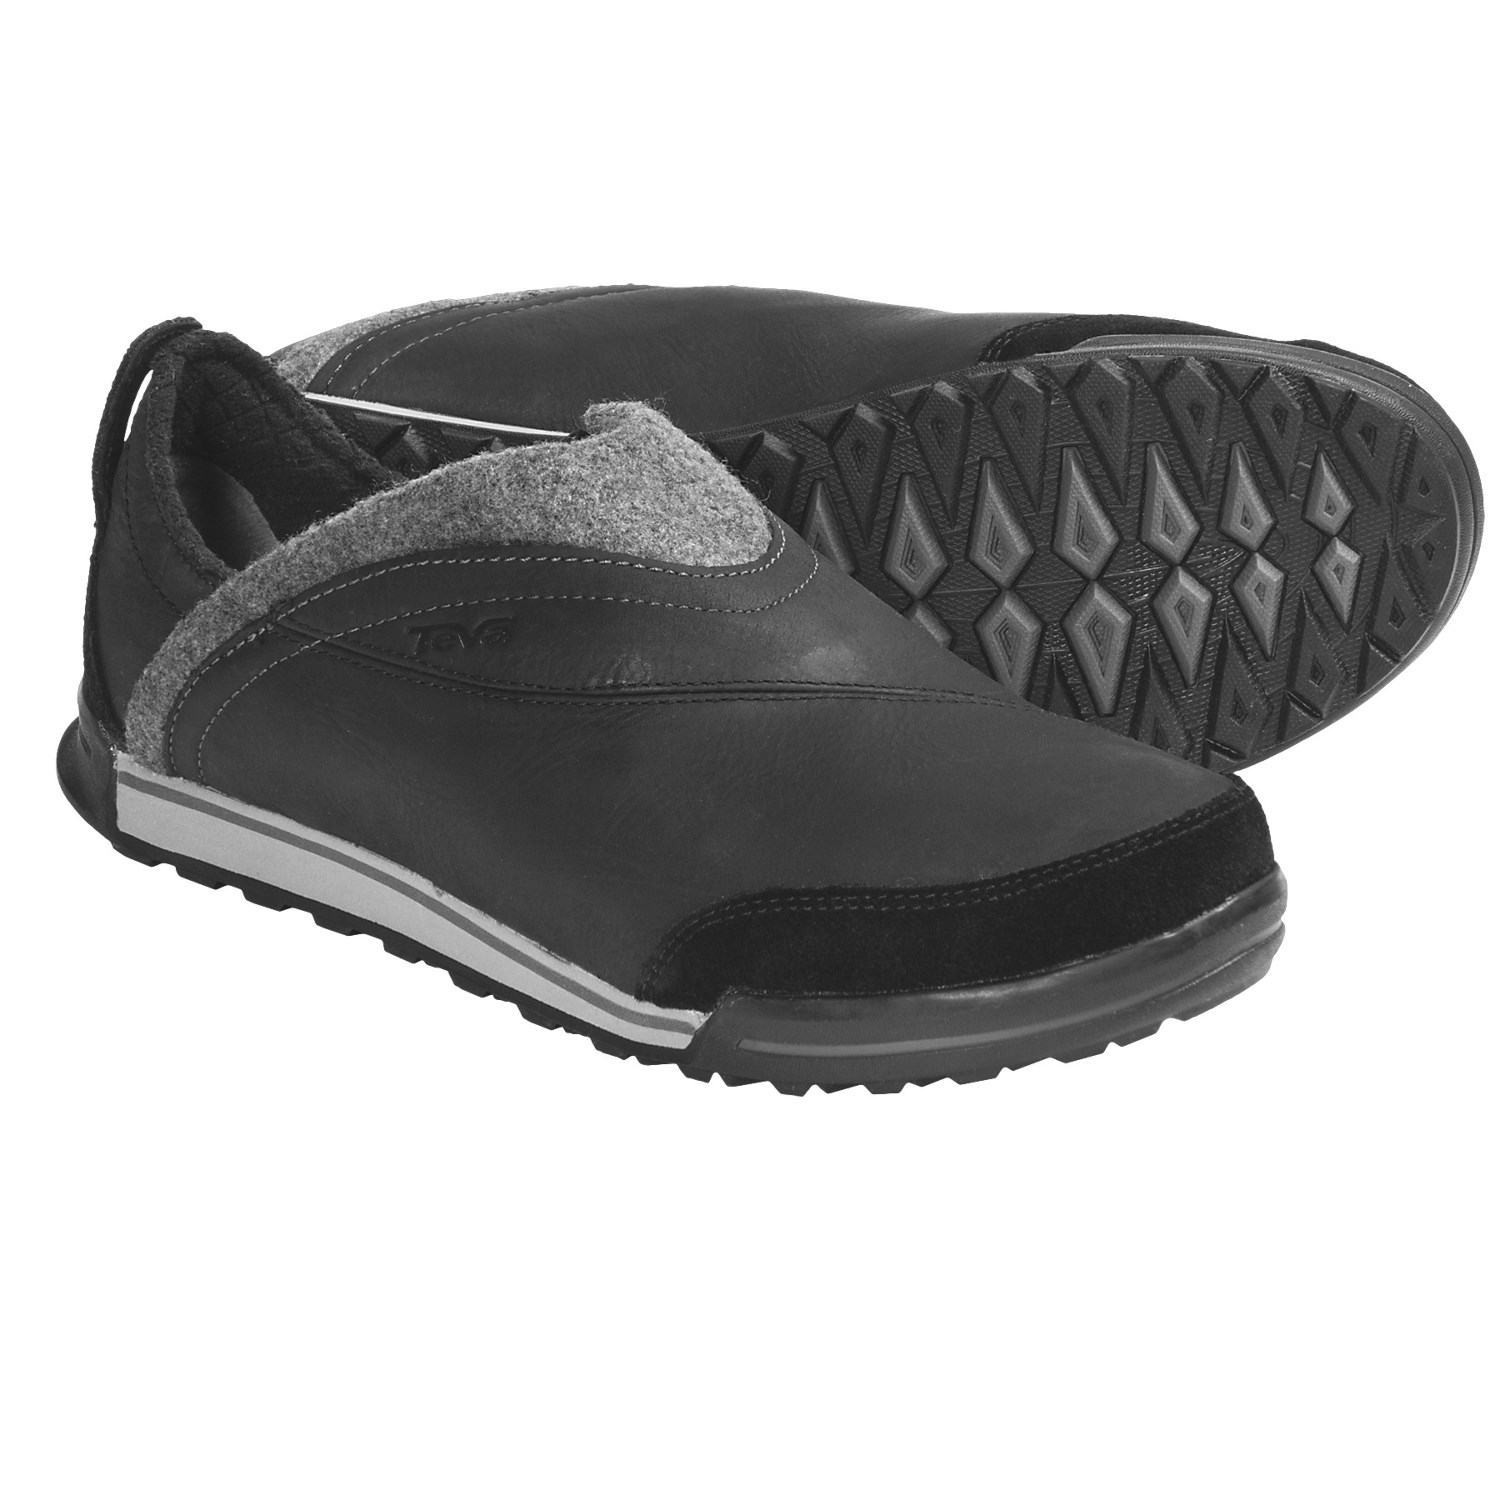 Teva Haley Shoes - Leather (For Women) in Black